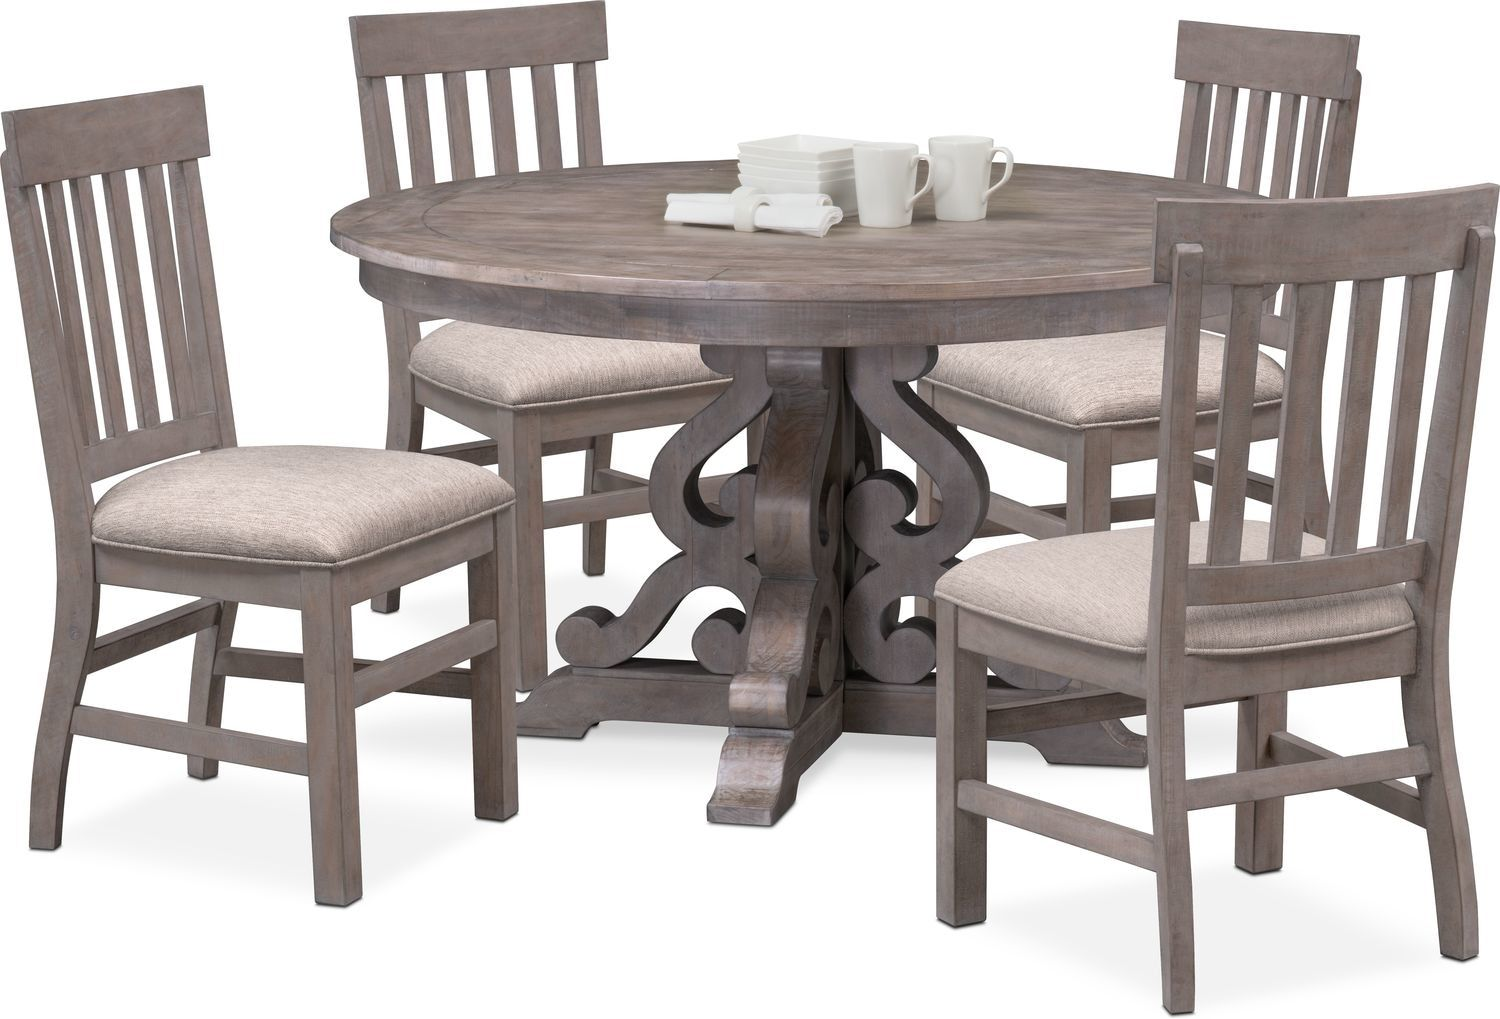 Charthouse Round Dining Table And 4 Side Chairs In 2020 Round Dining Room Table Round Dining Room Sets Round Dining Room